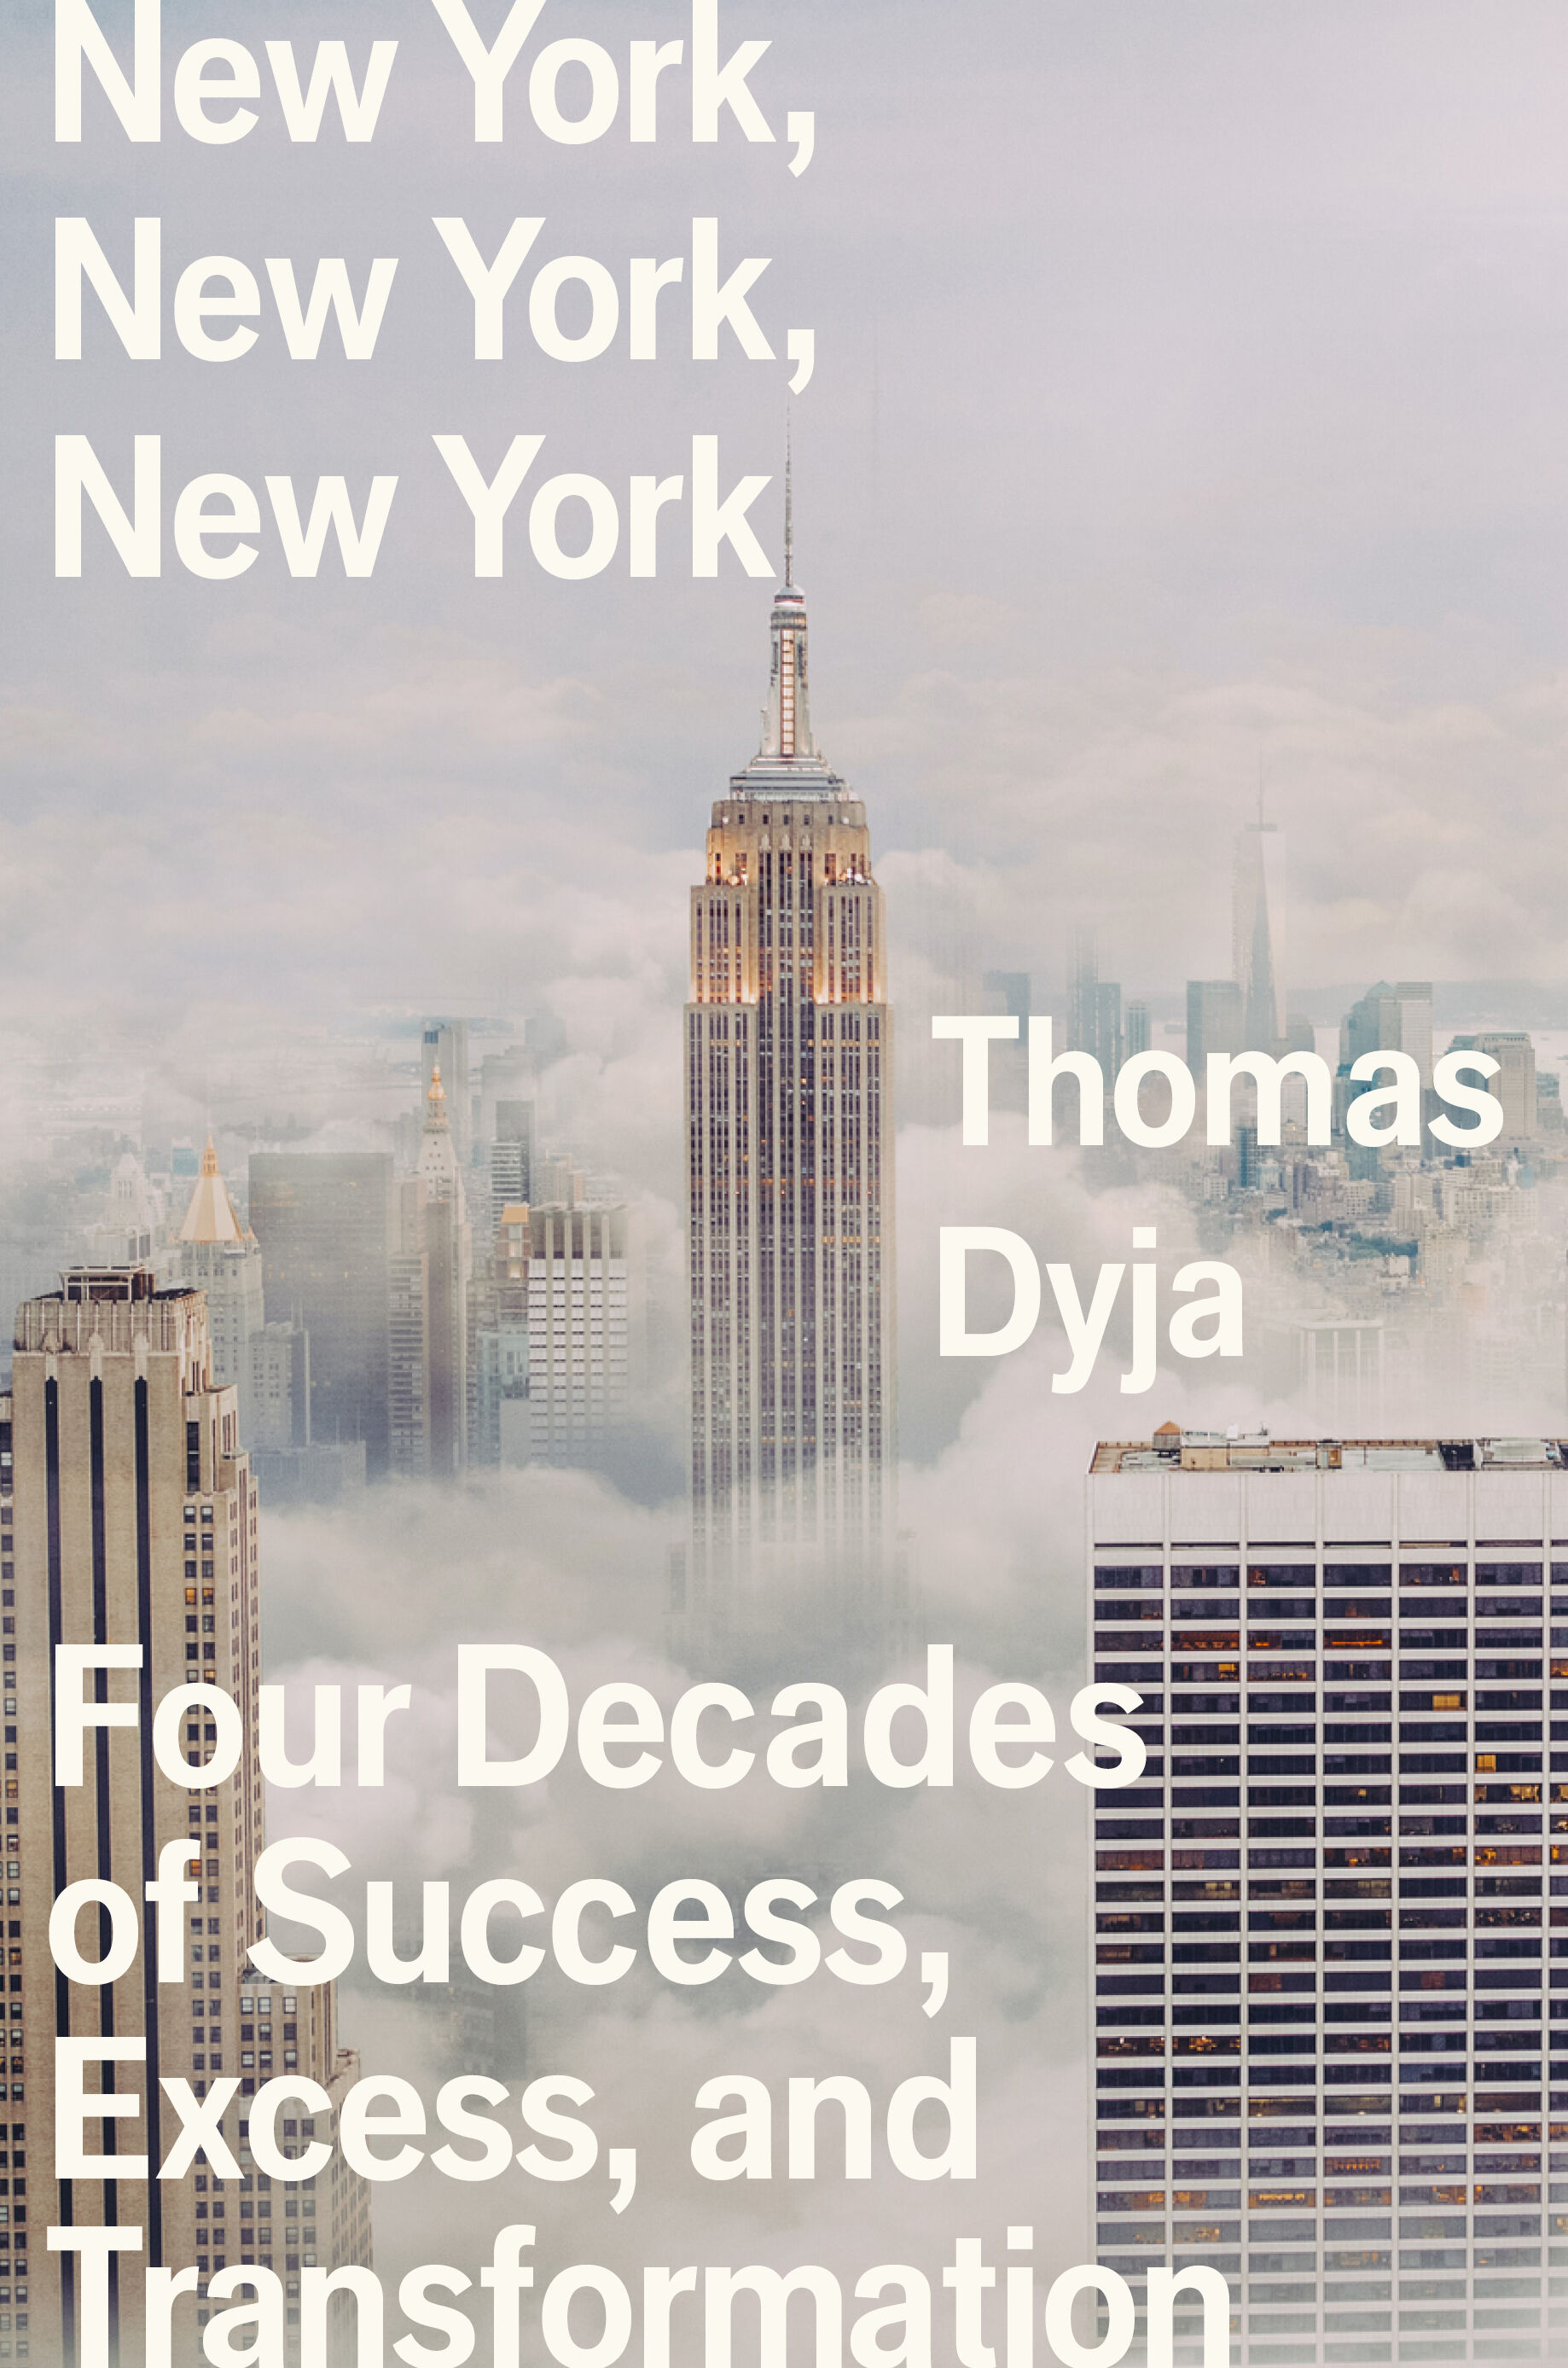 A book cover showing a cloudy New York cityscape with the Empire State Building towering over the clouds.